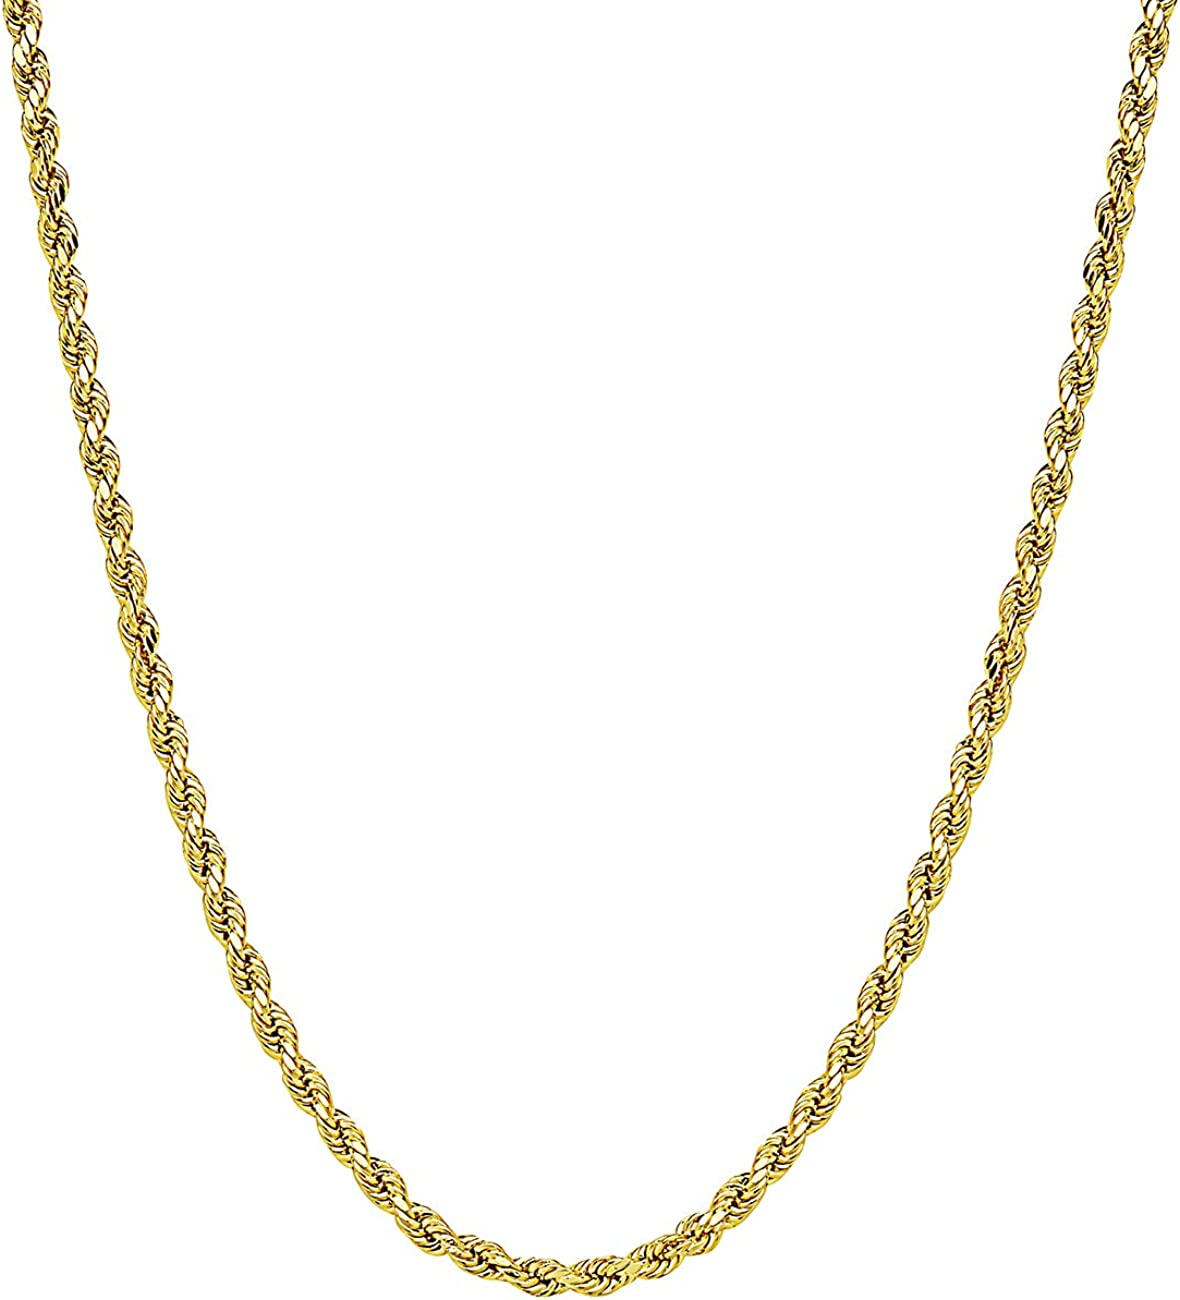 ITALY Jewelry 14K Gold Chain - 3MM Fancy Rope Chain Necklace, (16